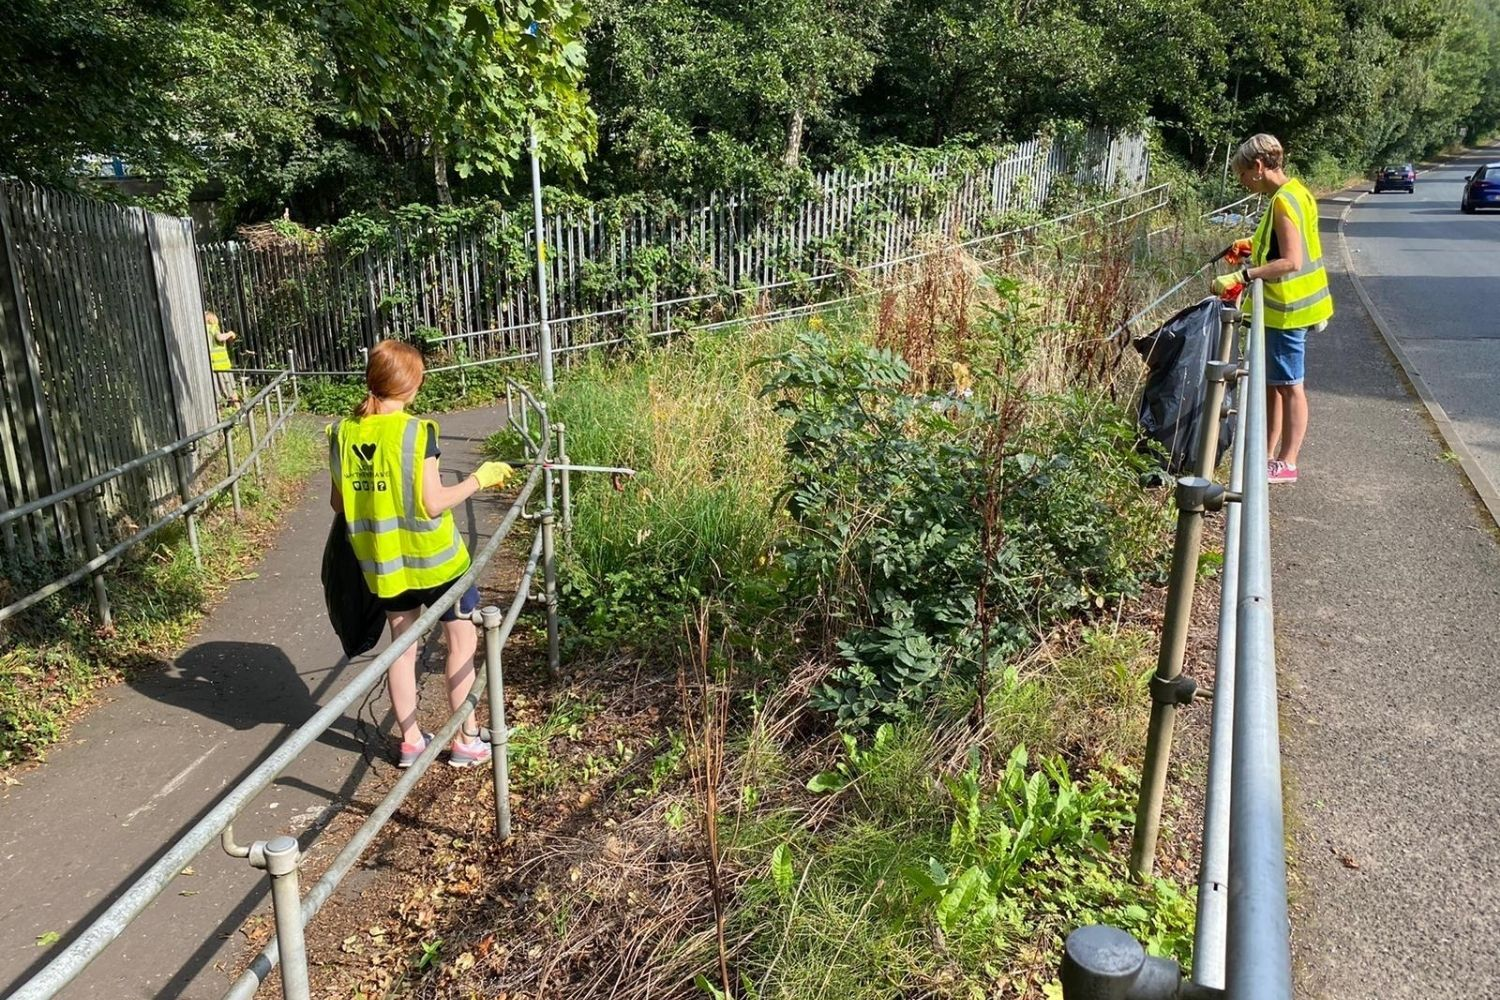 Clearing Litter in Wythenshawe